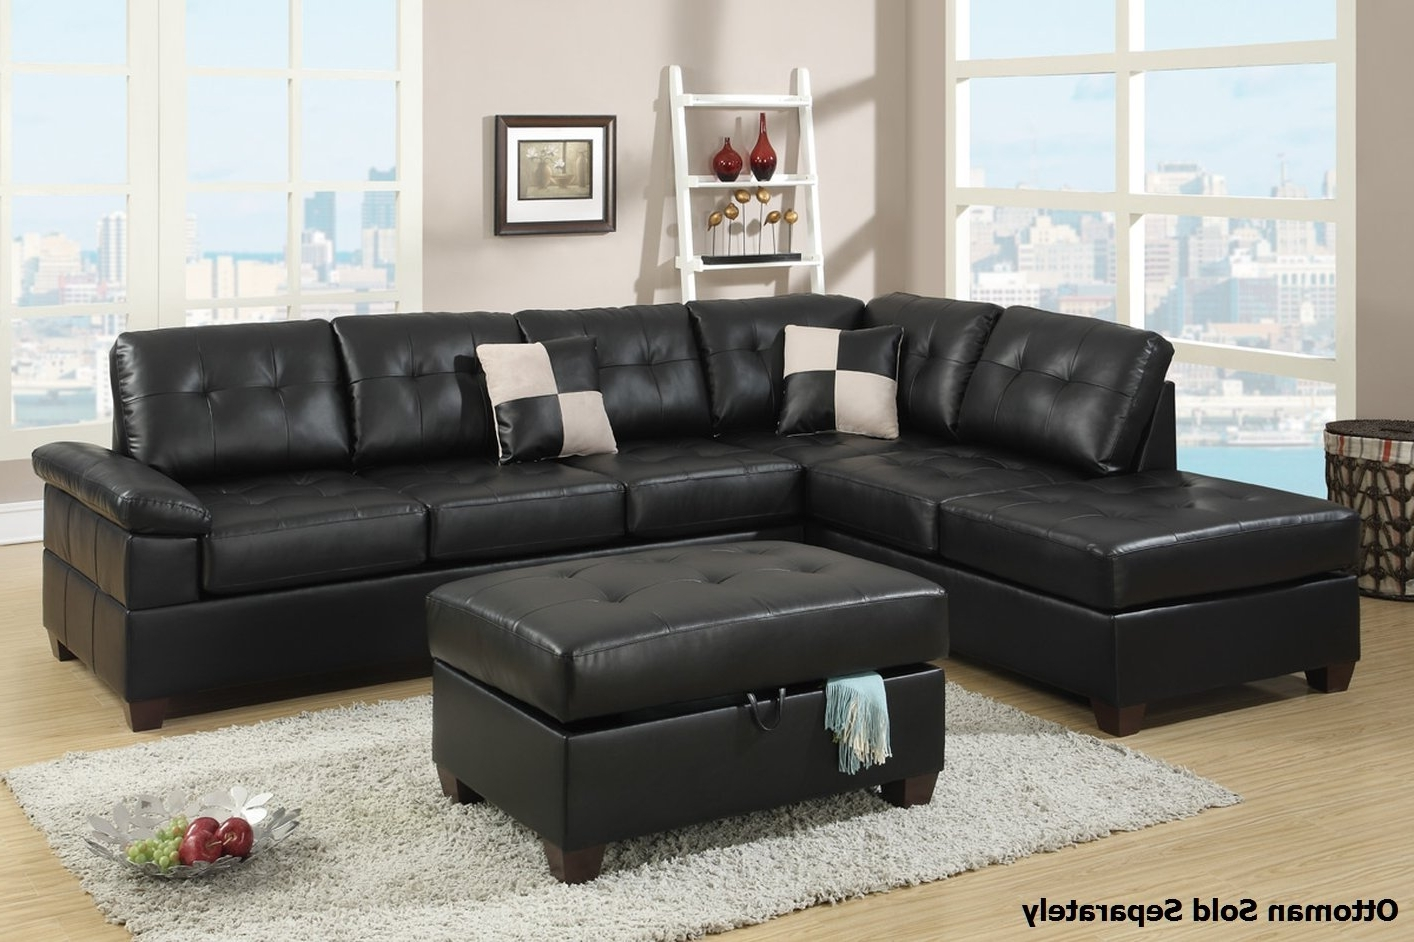 Popular Sectional Sofas At Rooms To Go Pertaining To Beautiful Sectional Sofas Rooms To Go 77 For Office Sofa Ideas (View 6 of 15)